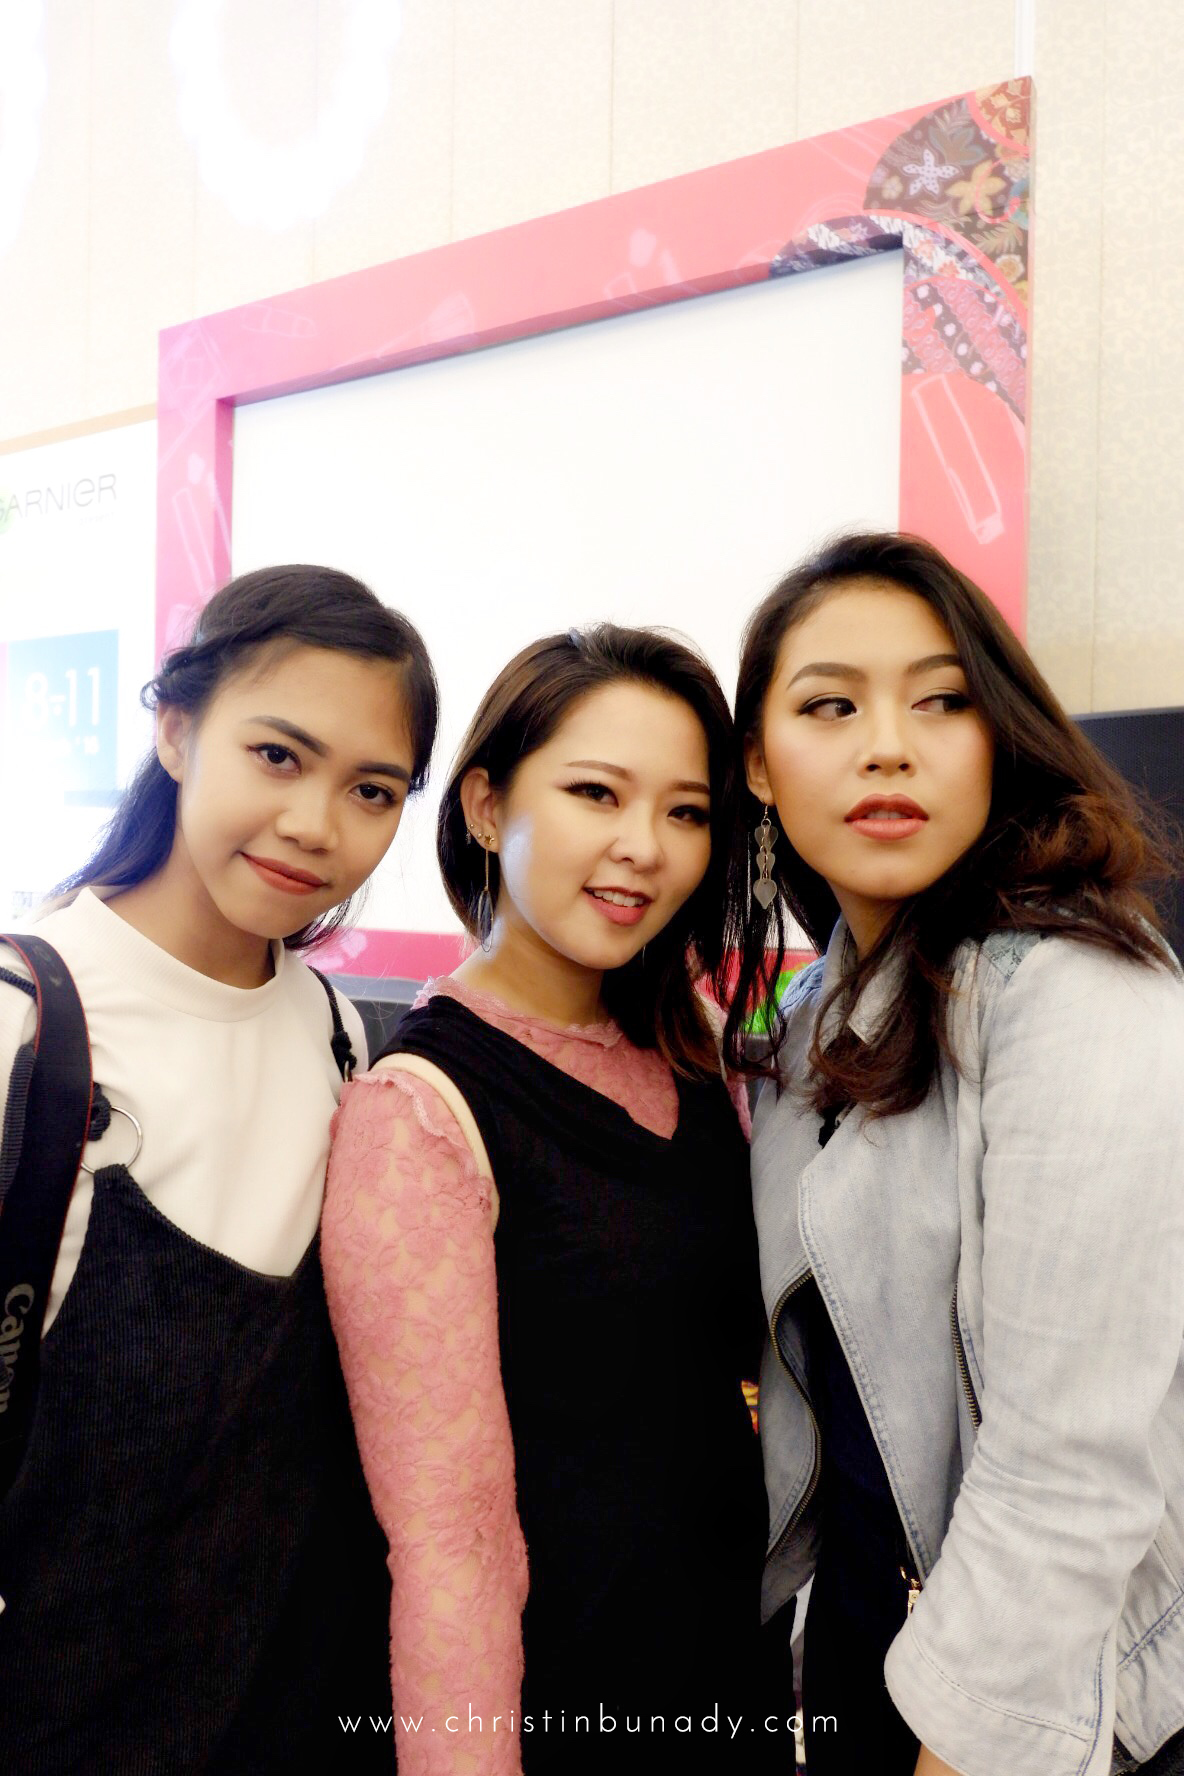 INTERNATIONAL BANDUNG BEAUTY EXPO 2018 ( TOO MUCH FUN! )